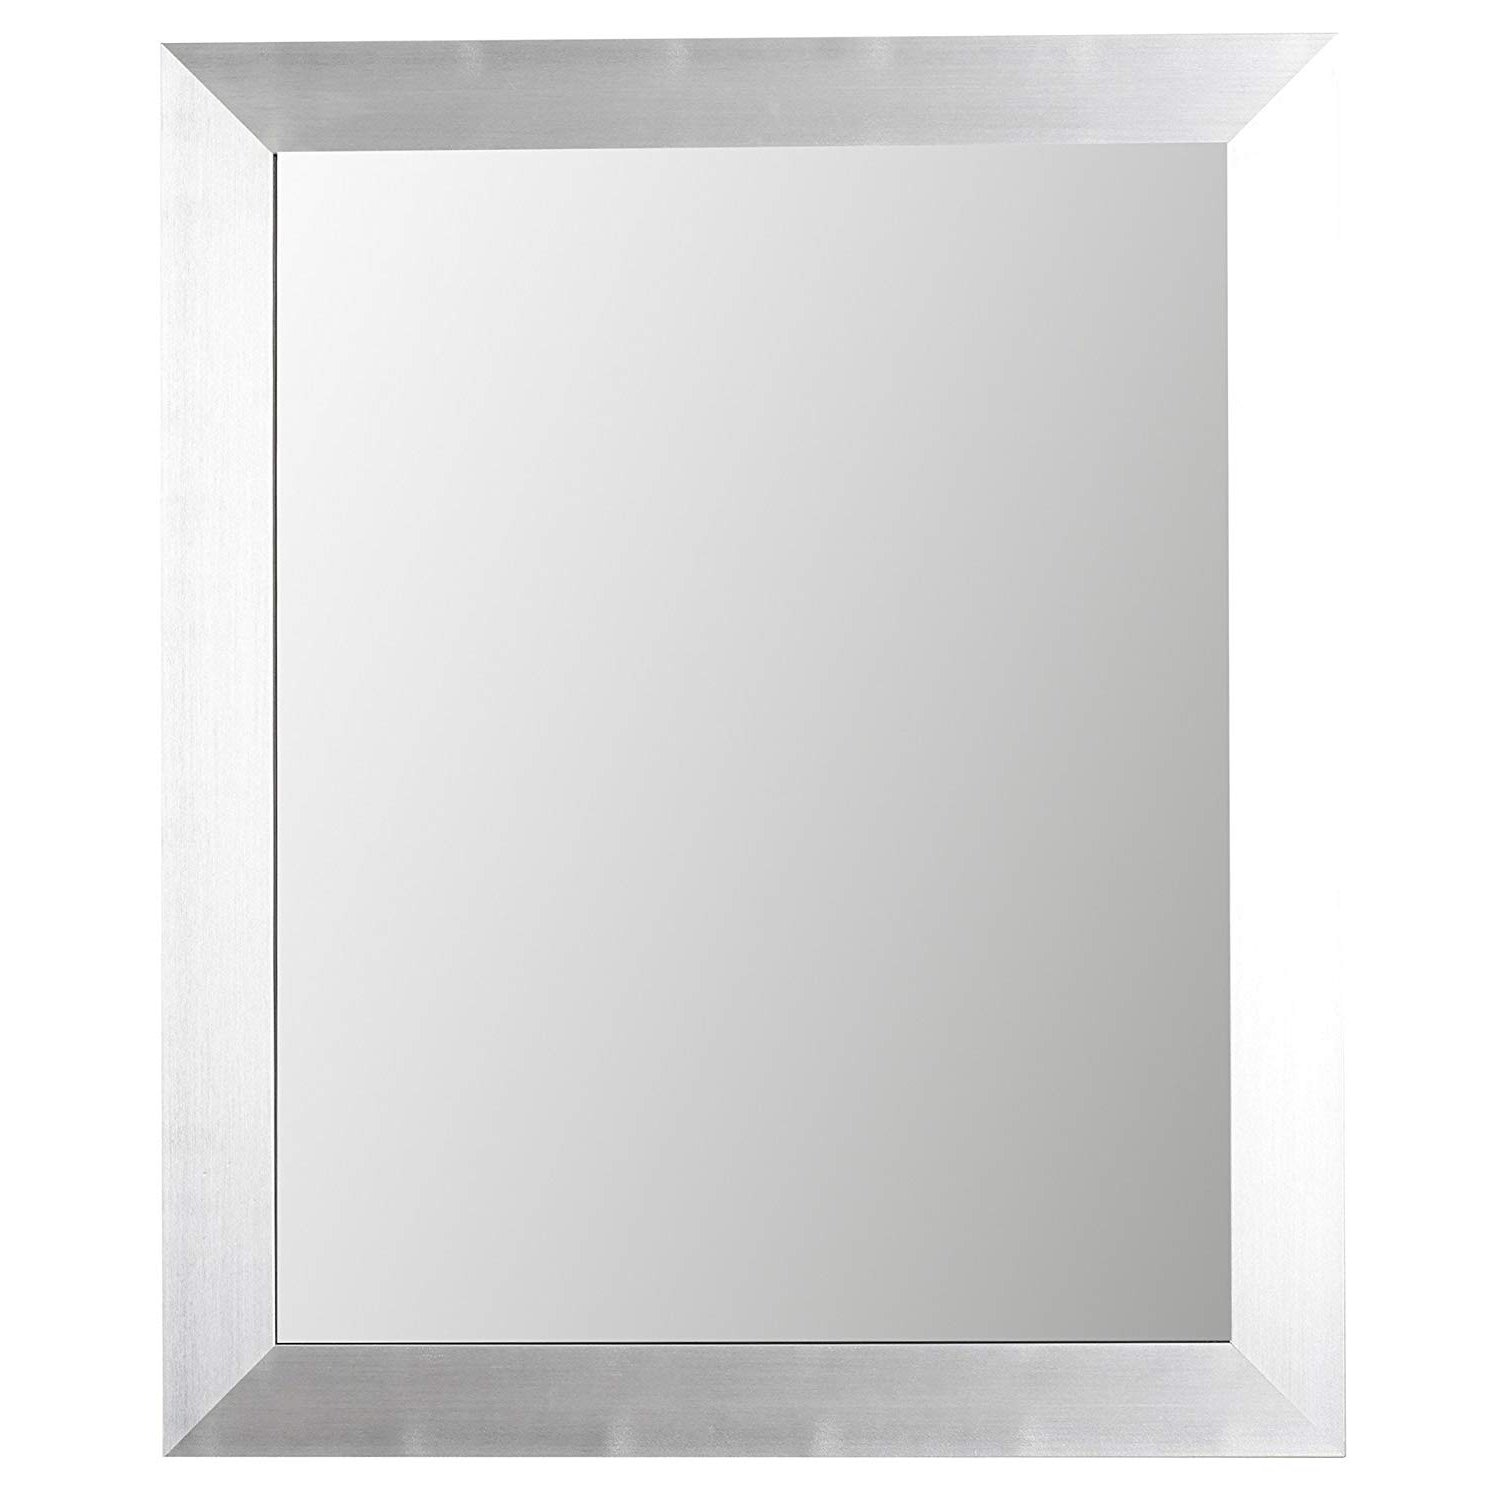 Widely Used Amazon: Northend Wall Mounted Mirror Rectangle Shape In In Northend Wall Mirrors (View 3 of 20)